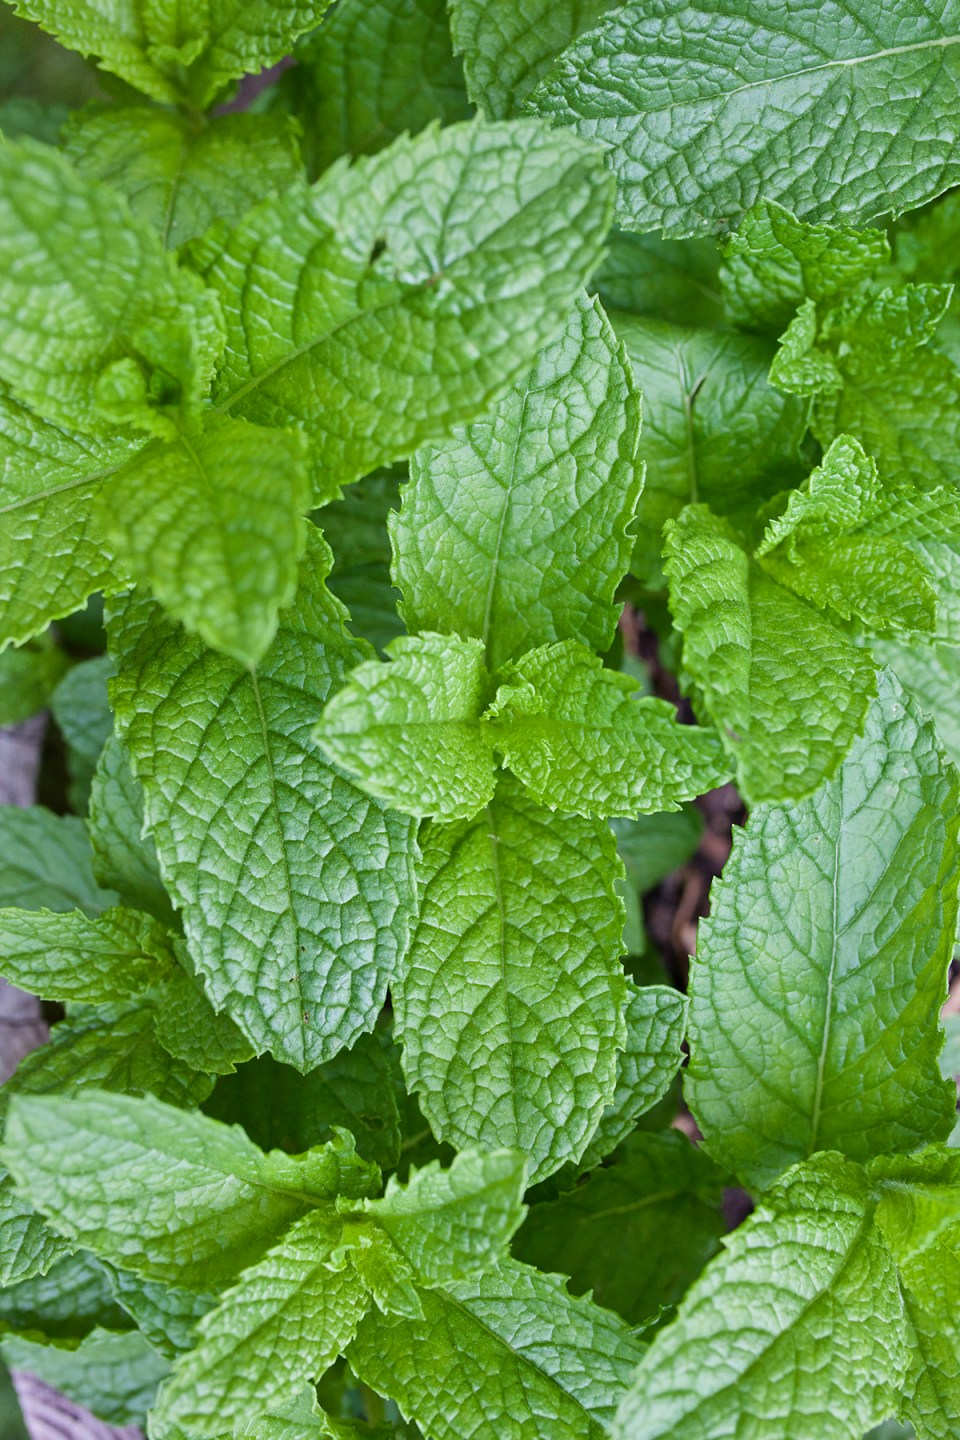 4 Tips to Control Mint in the Garden | Herbal Academy | If you've ever wondered how to control mint in your herb garden, this post is for you. Here are 4 tips to help you keep your mint plants under control!